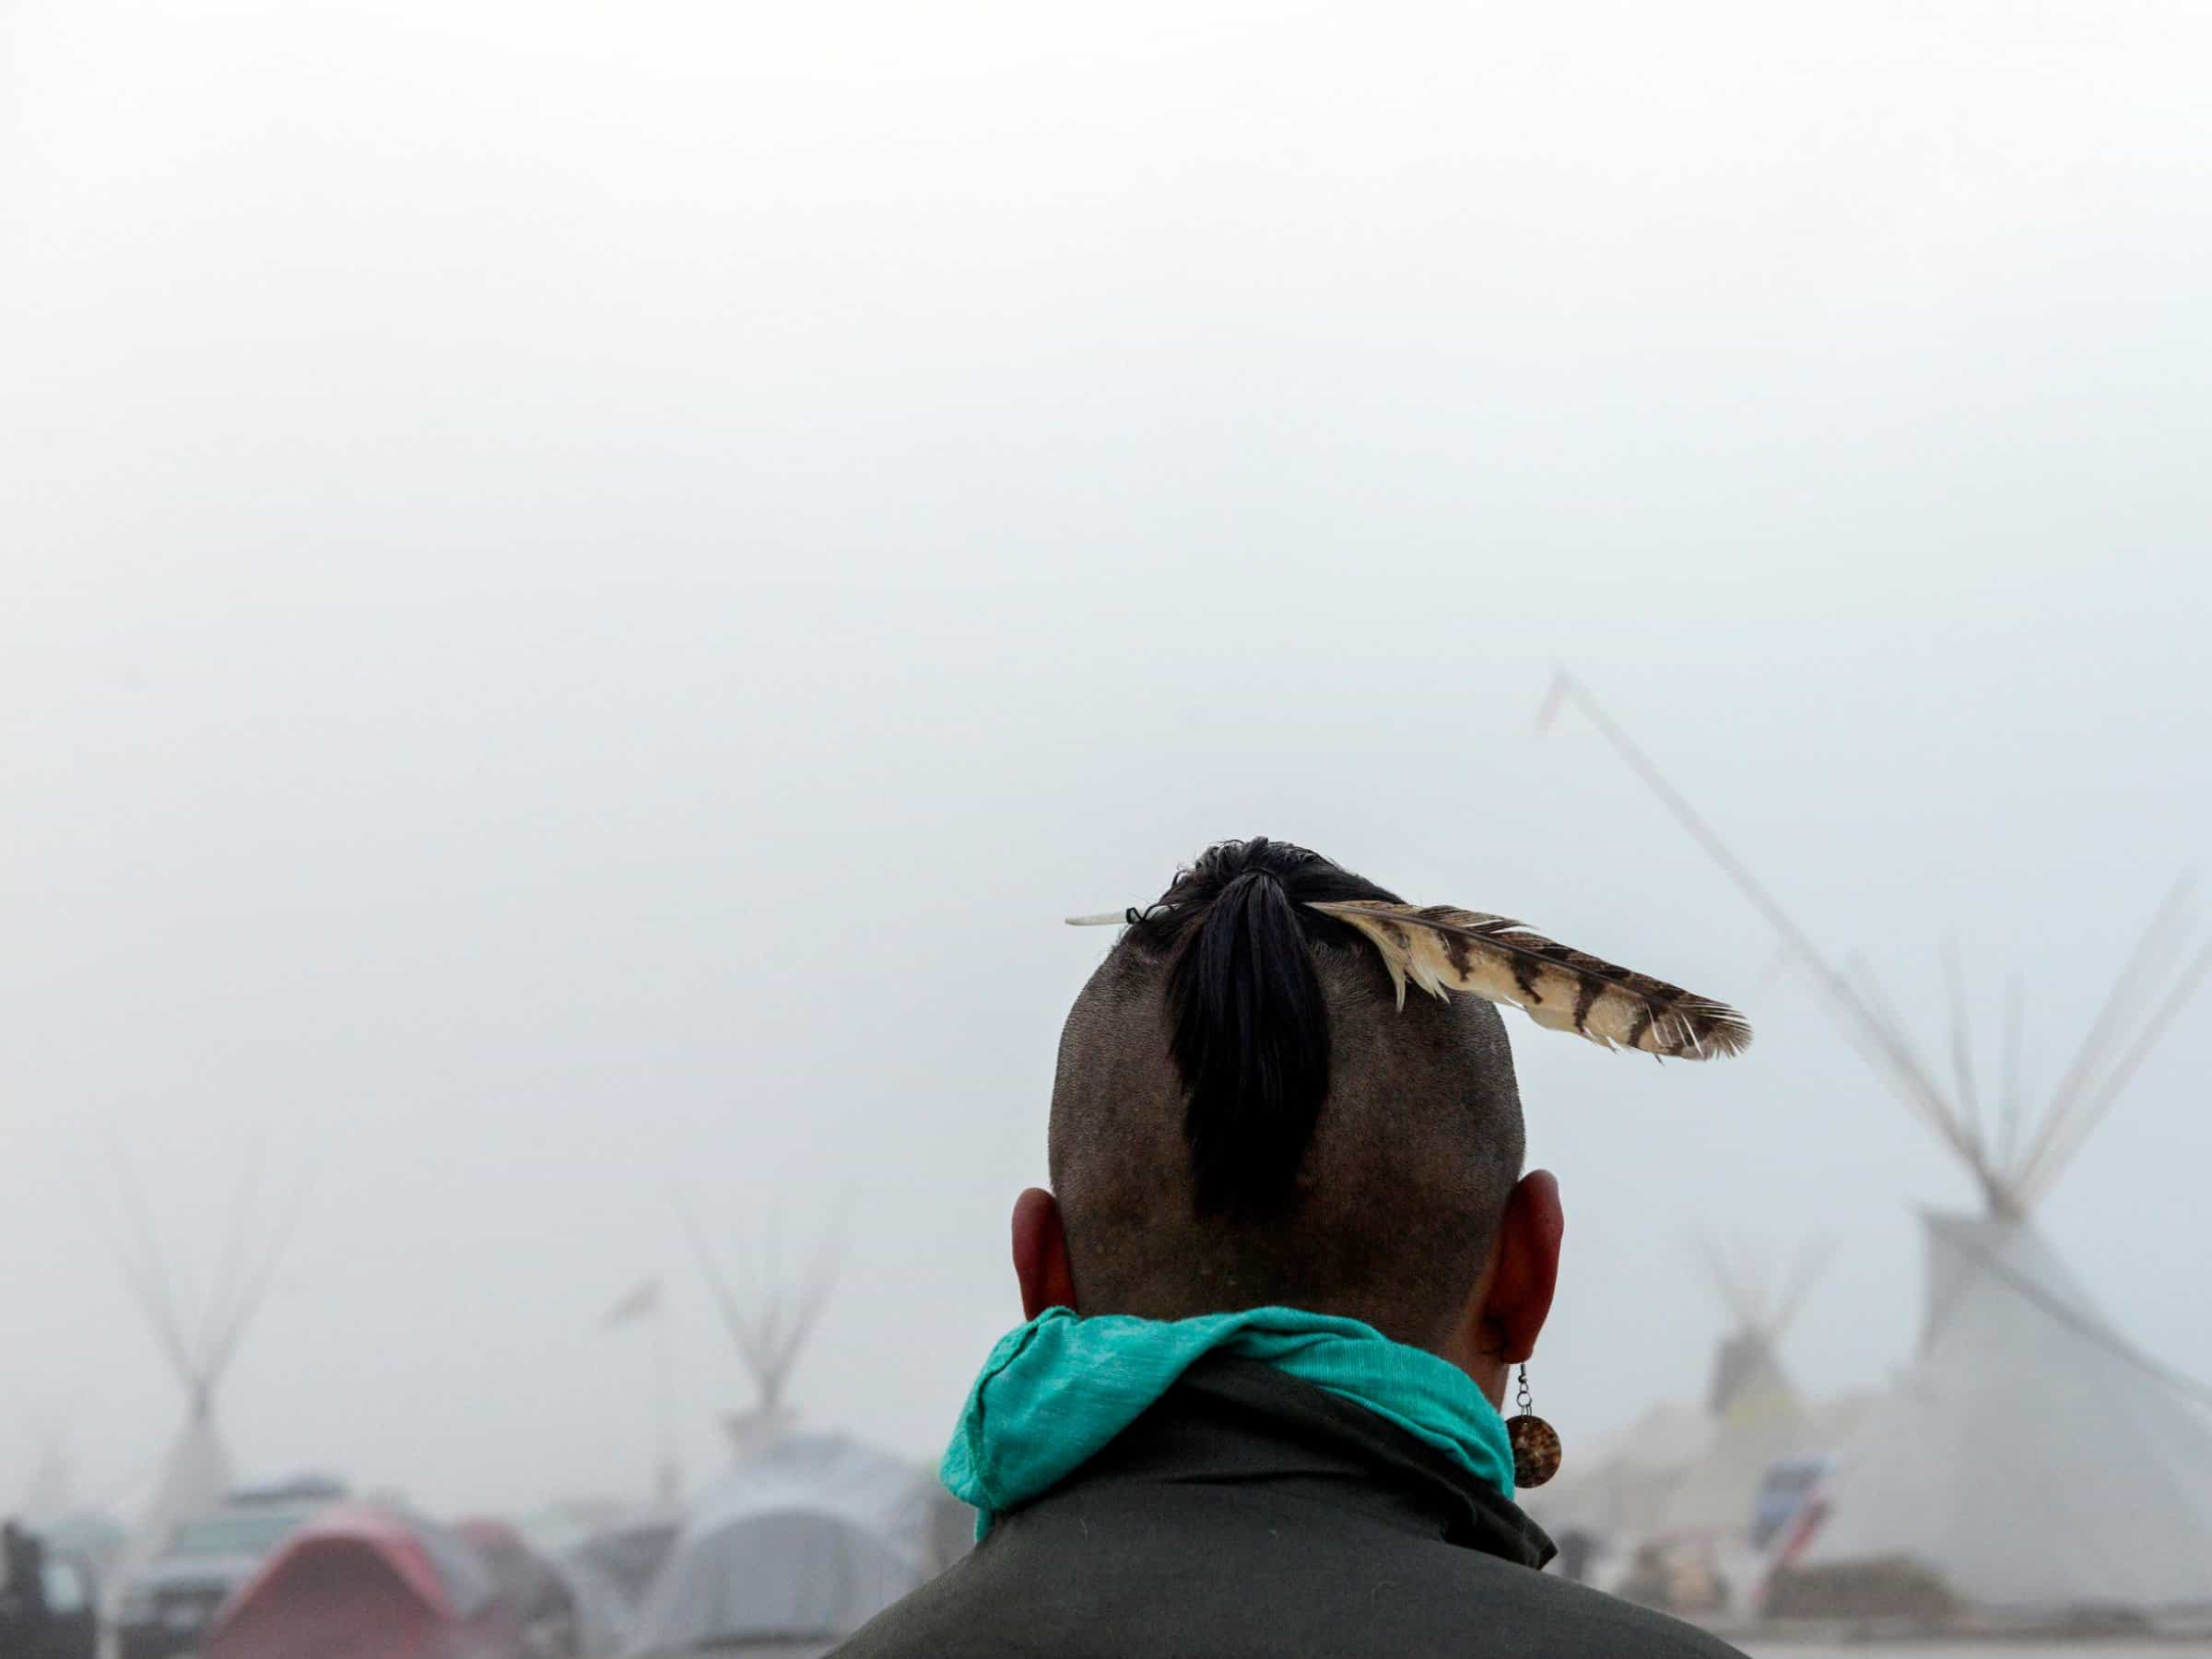 A man from the Muskogee tribe looks at the Oceti Sakowin shrouded in mist during a protest against the Dakota Access pipeline near the Standing Rock Indian Reservation near Cannon Ball, North Dakota, Photo by Stephanie Keith/Reuters